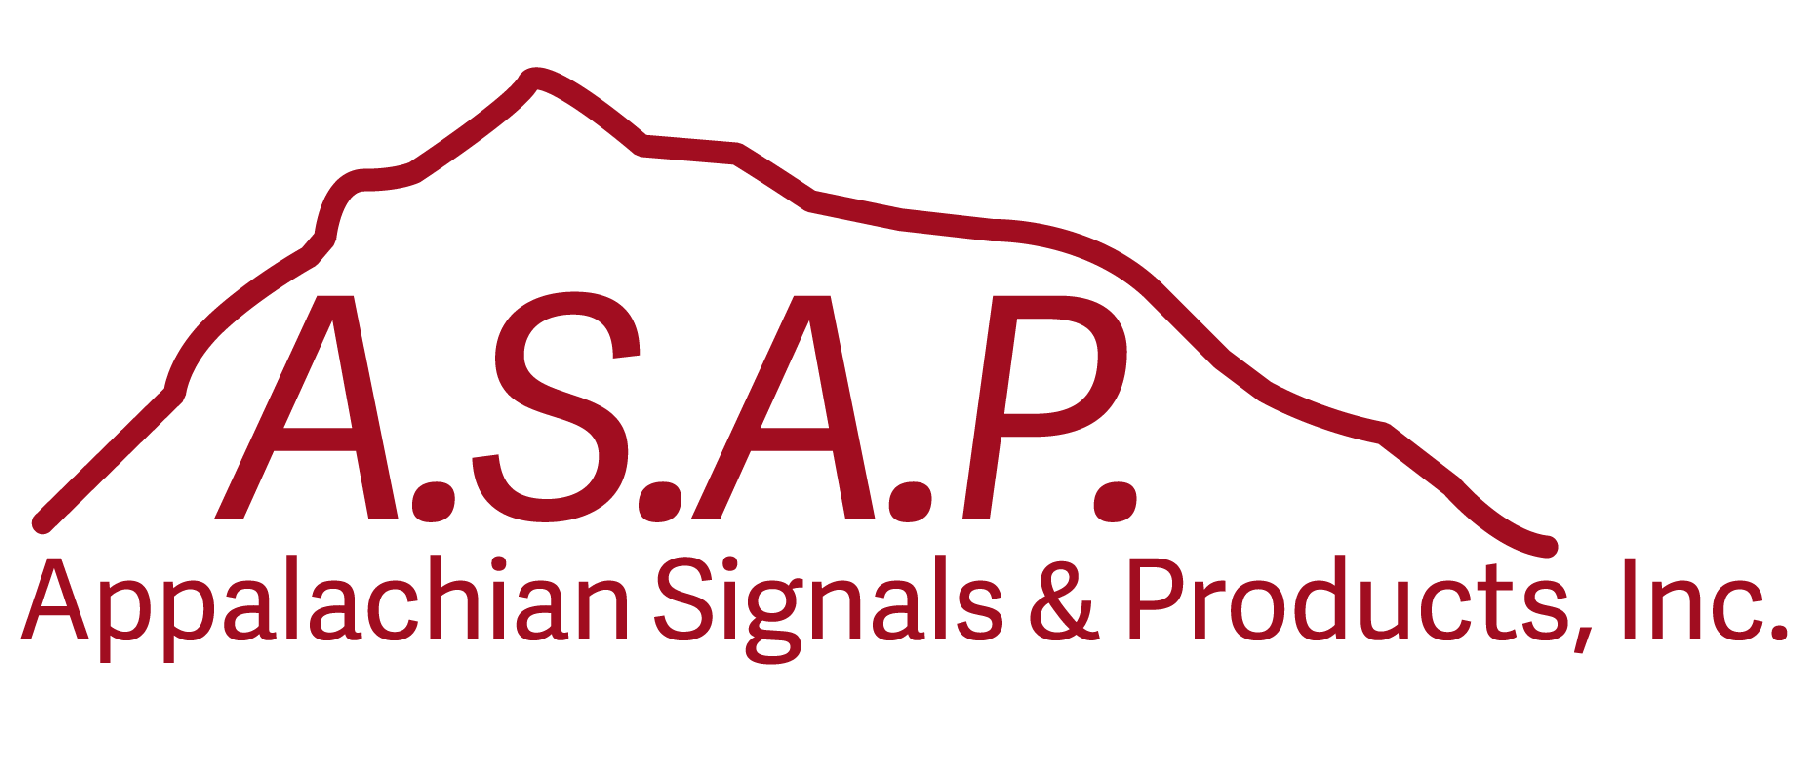 Appalachian Signals and Products Inc. logo